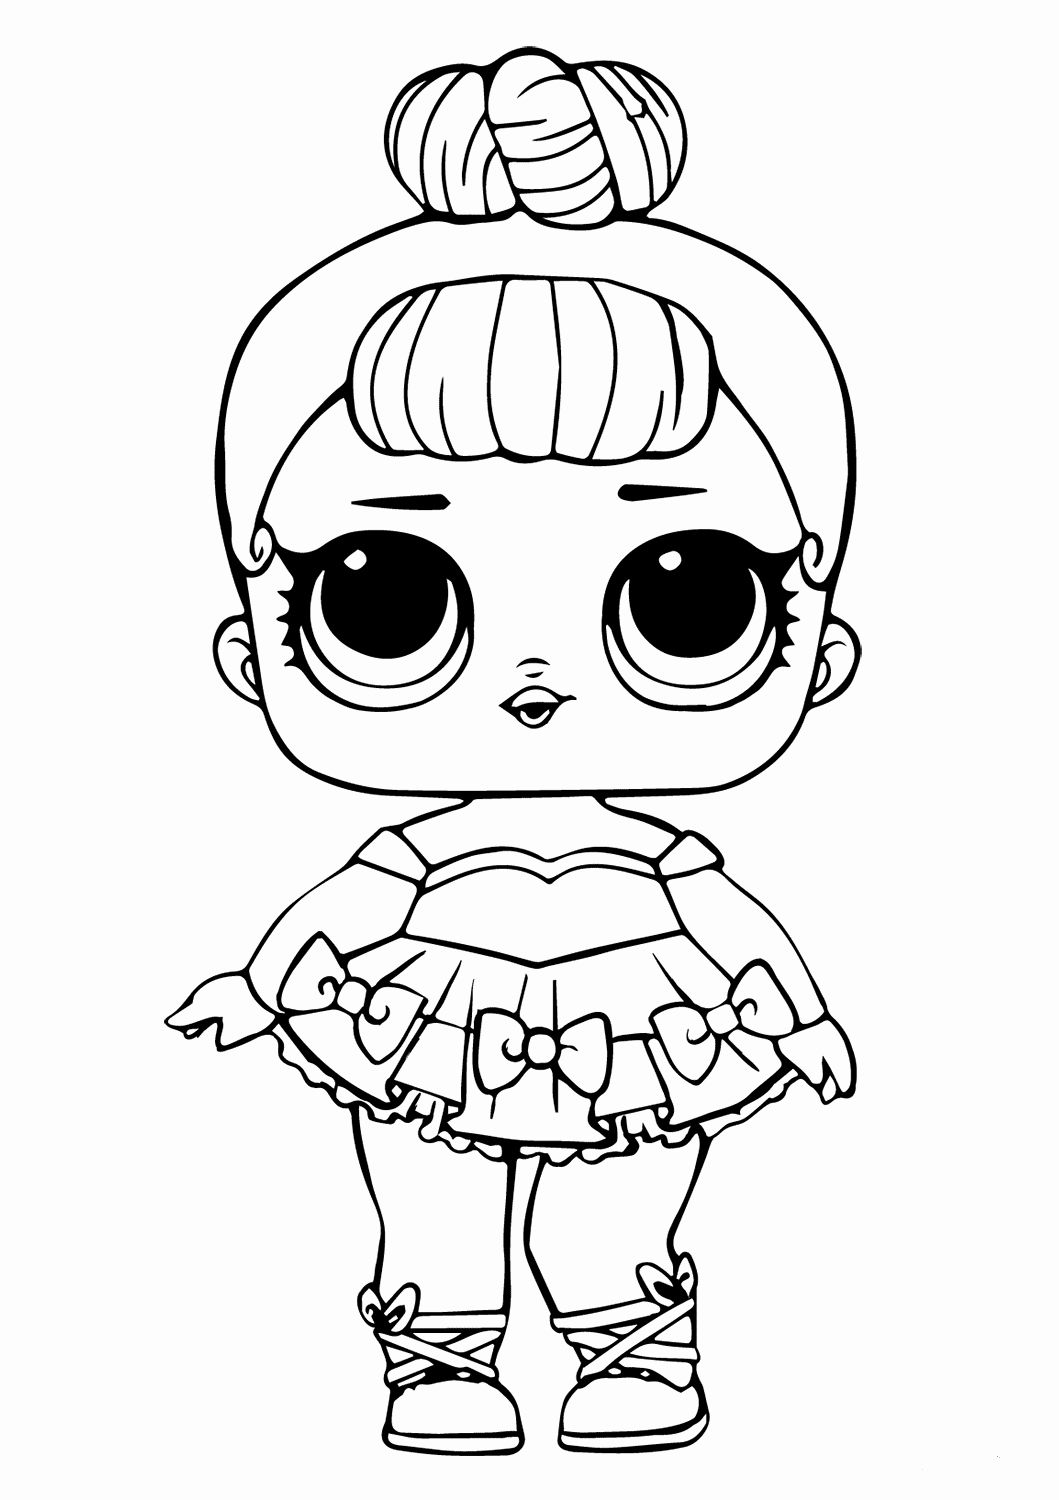 Baby Doll Coloring Page Beautiful Lol Doll Coloring Page Miss Baby Glitter Baby Coloring Pages Unicorn Coloring Pages Cool Coloring Pages